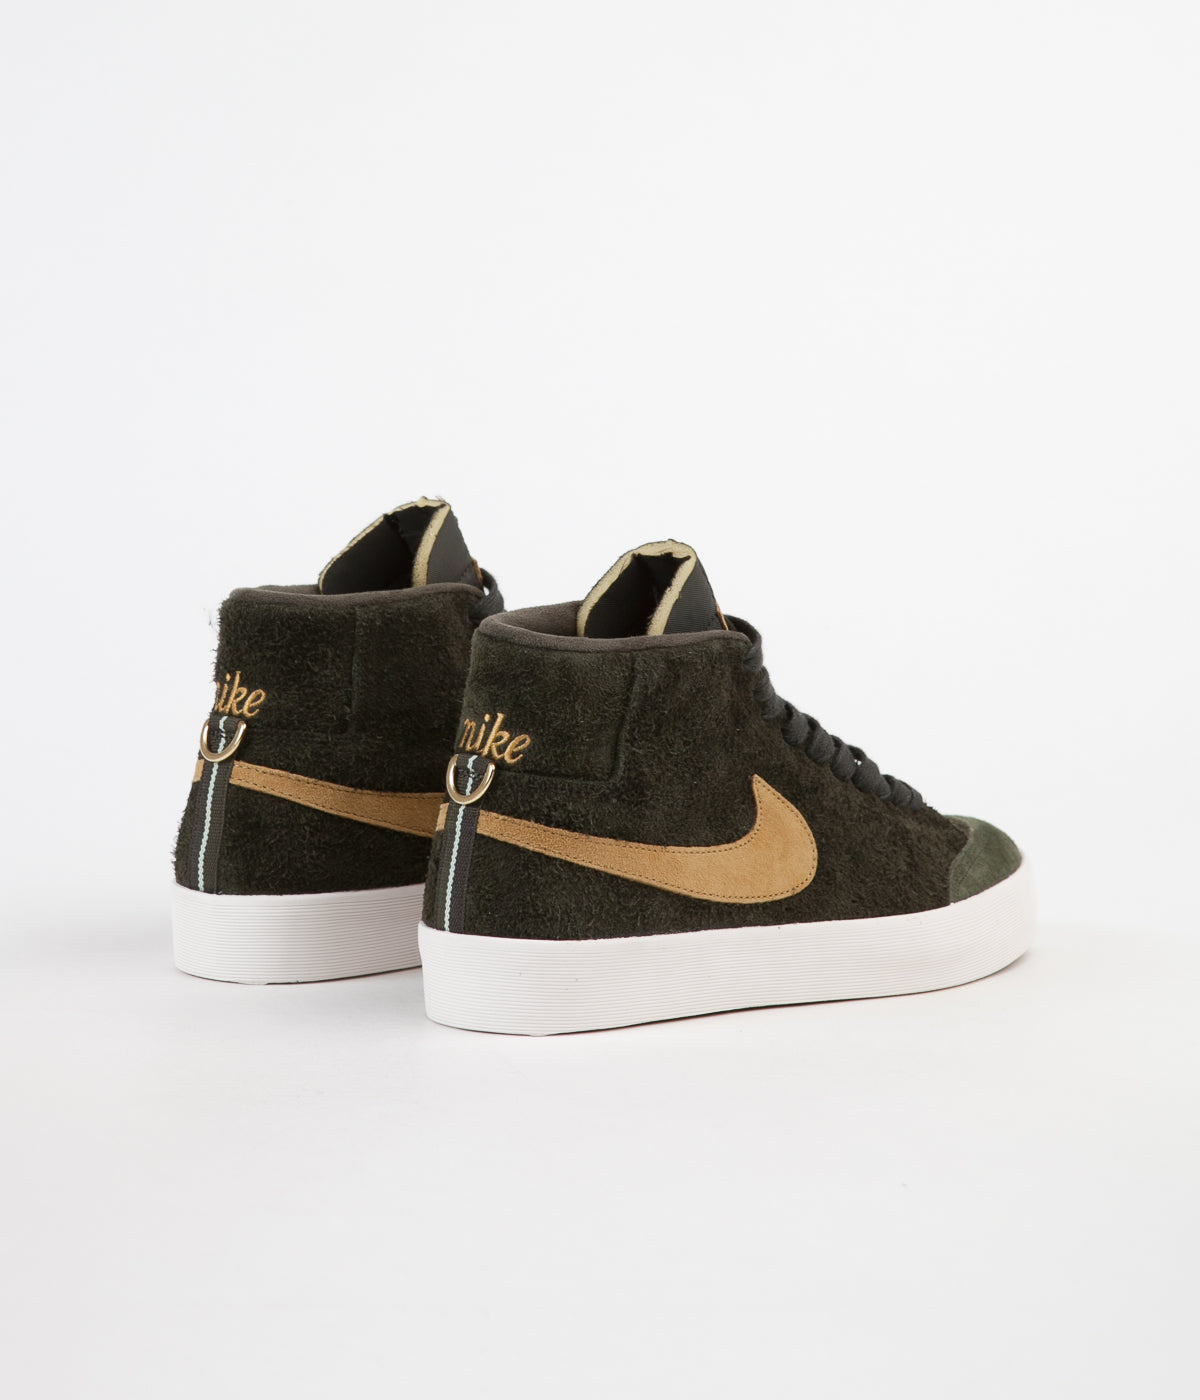 Nike SB Club 58 Blazer Mid QS Shoes - Sequoia / Flat Gold